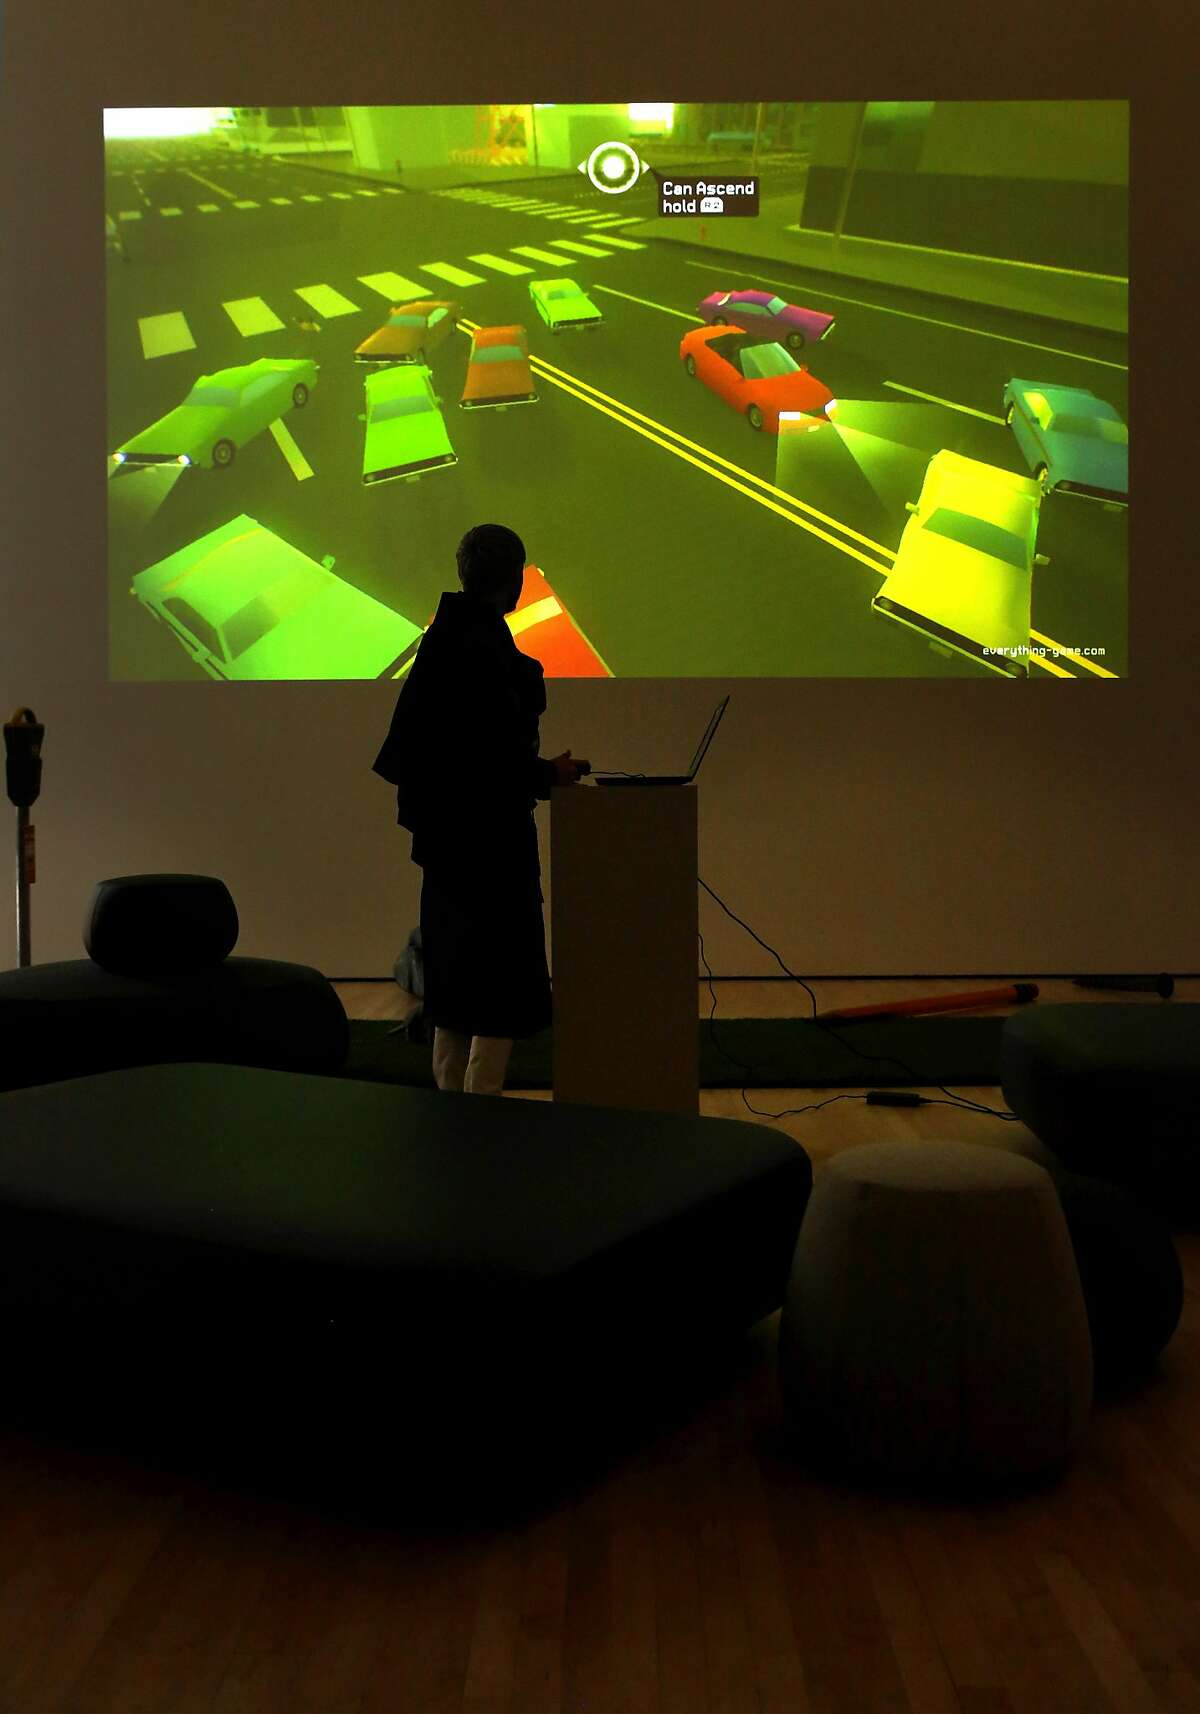 Gamer-artist David O'Reilly with his pop-up arcade game